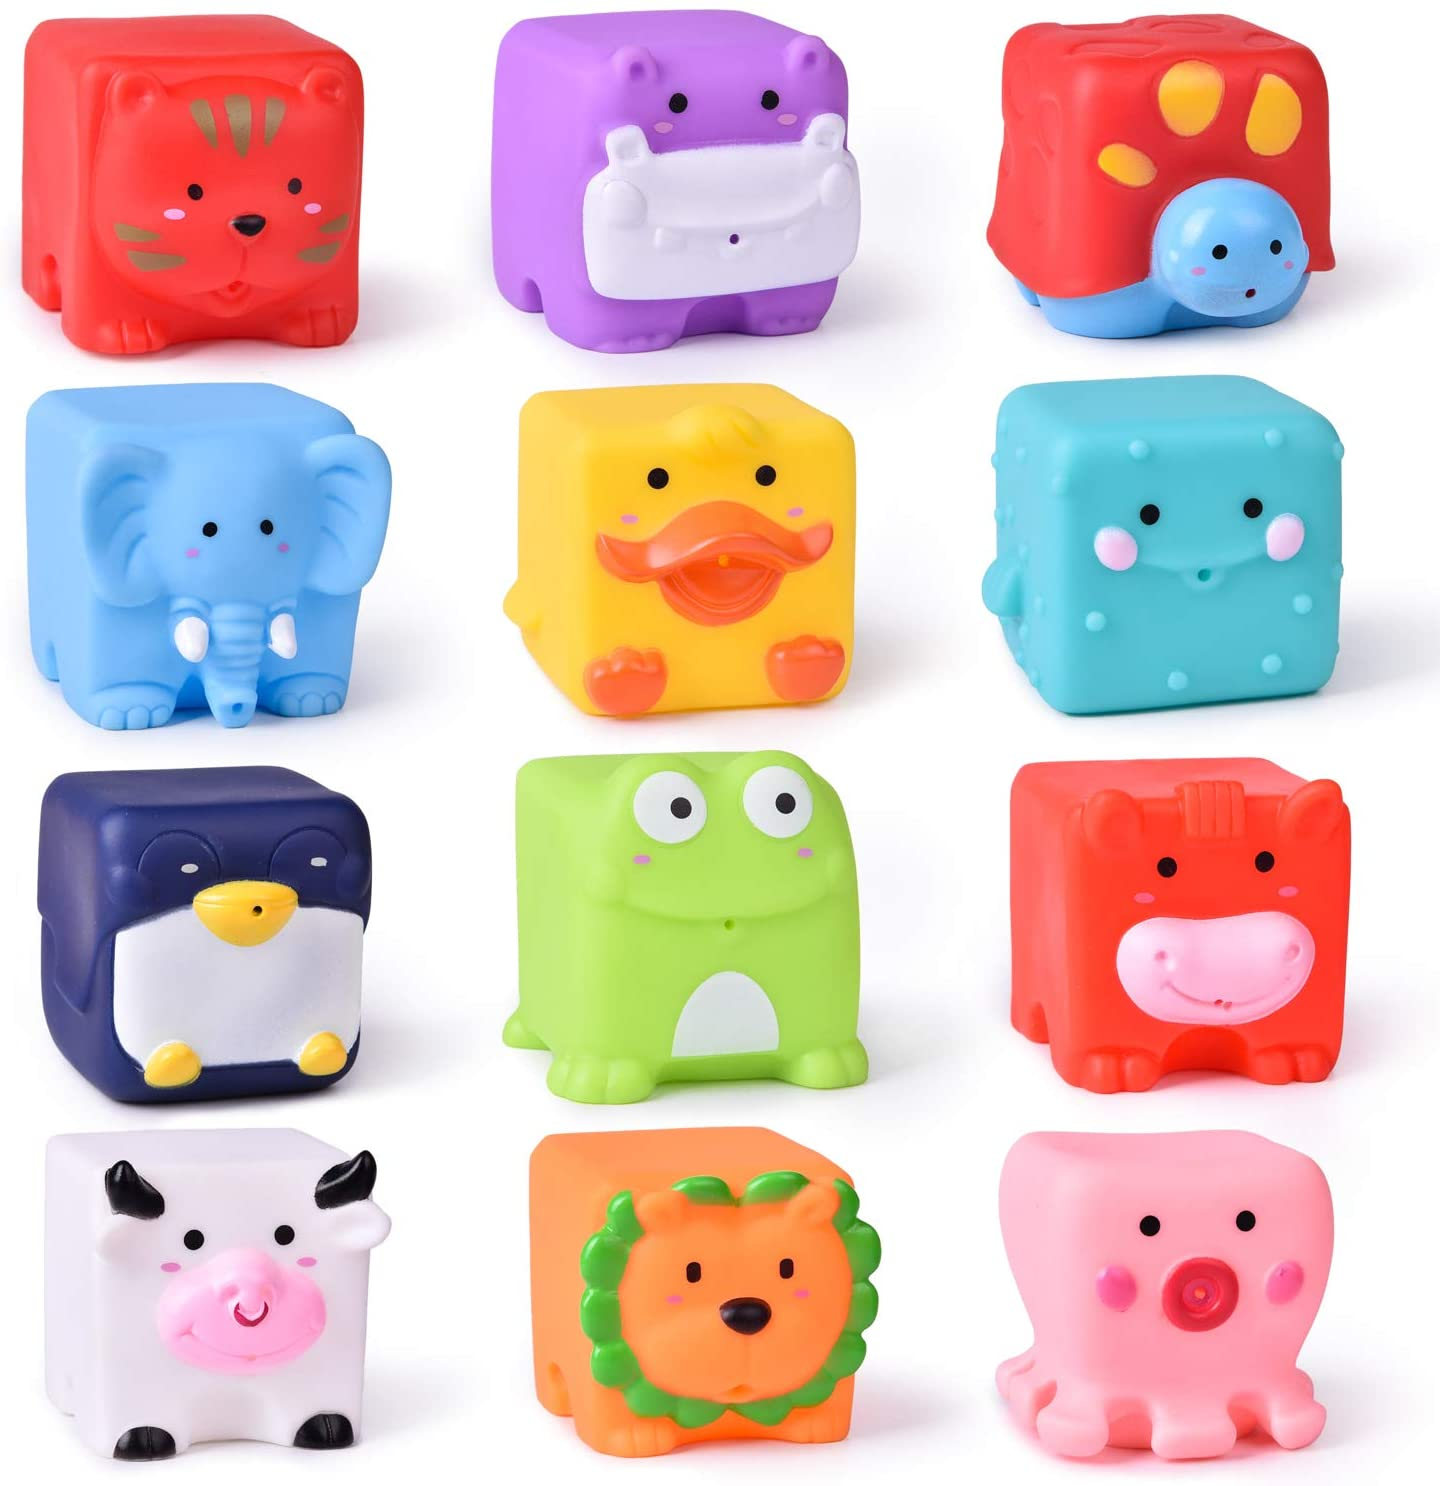 FUN LITTLE TOYS Kids Bath Toys, Soft Cube Bath Squirters, Squeeze Water Toys Building Blocks for Kids, 12 Pieces